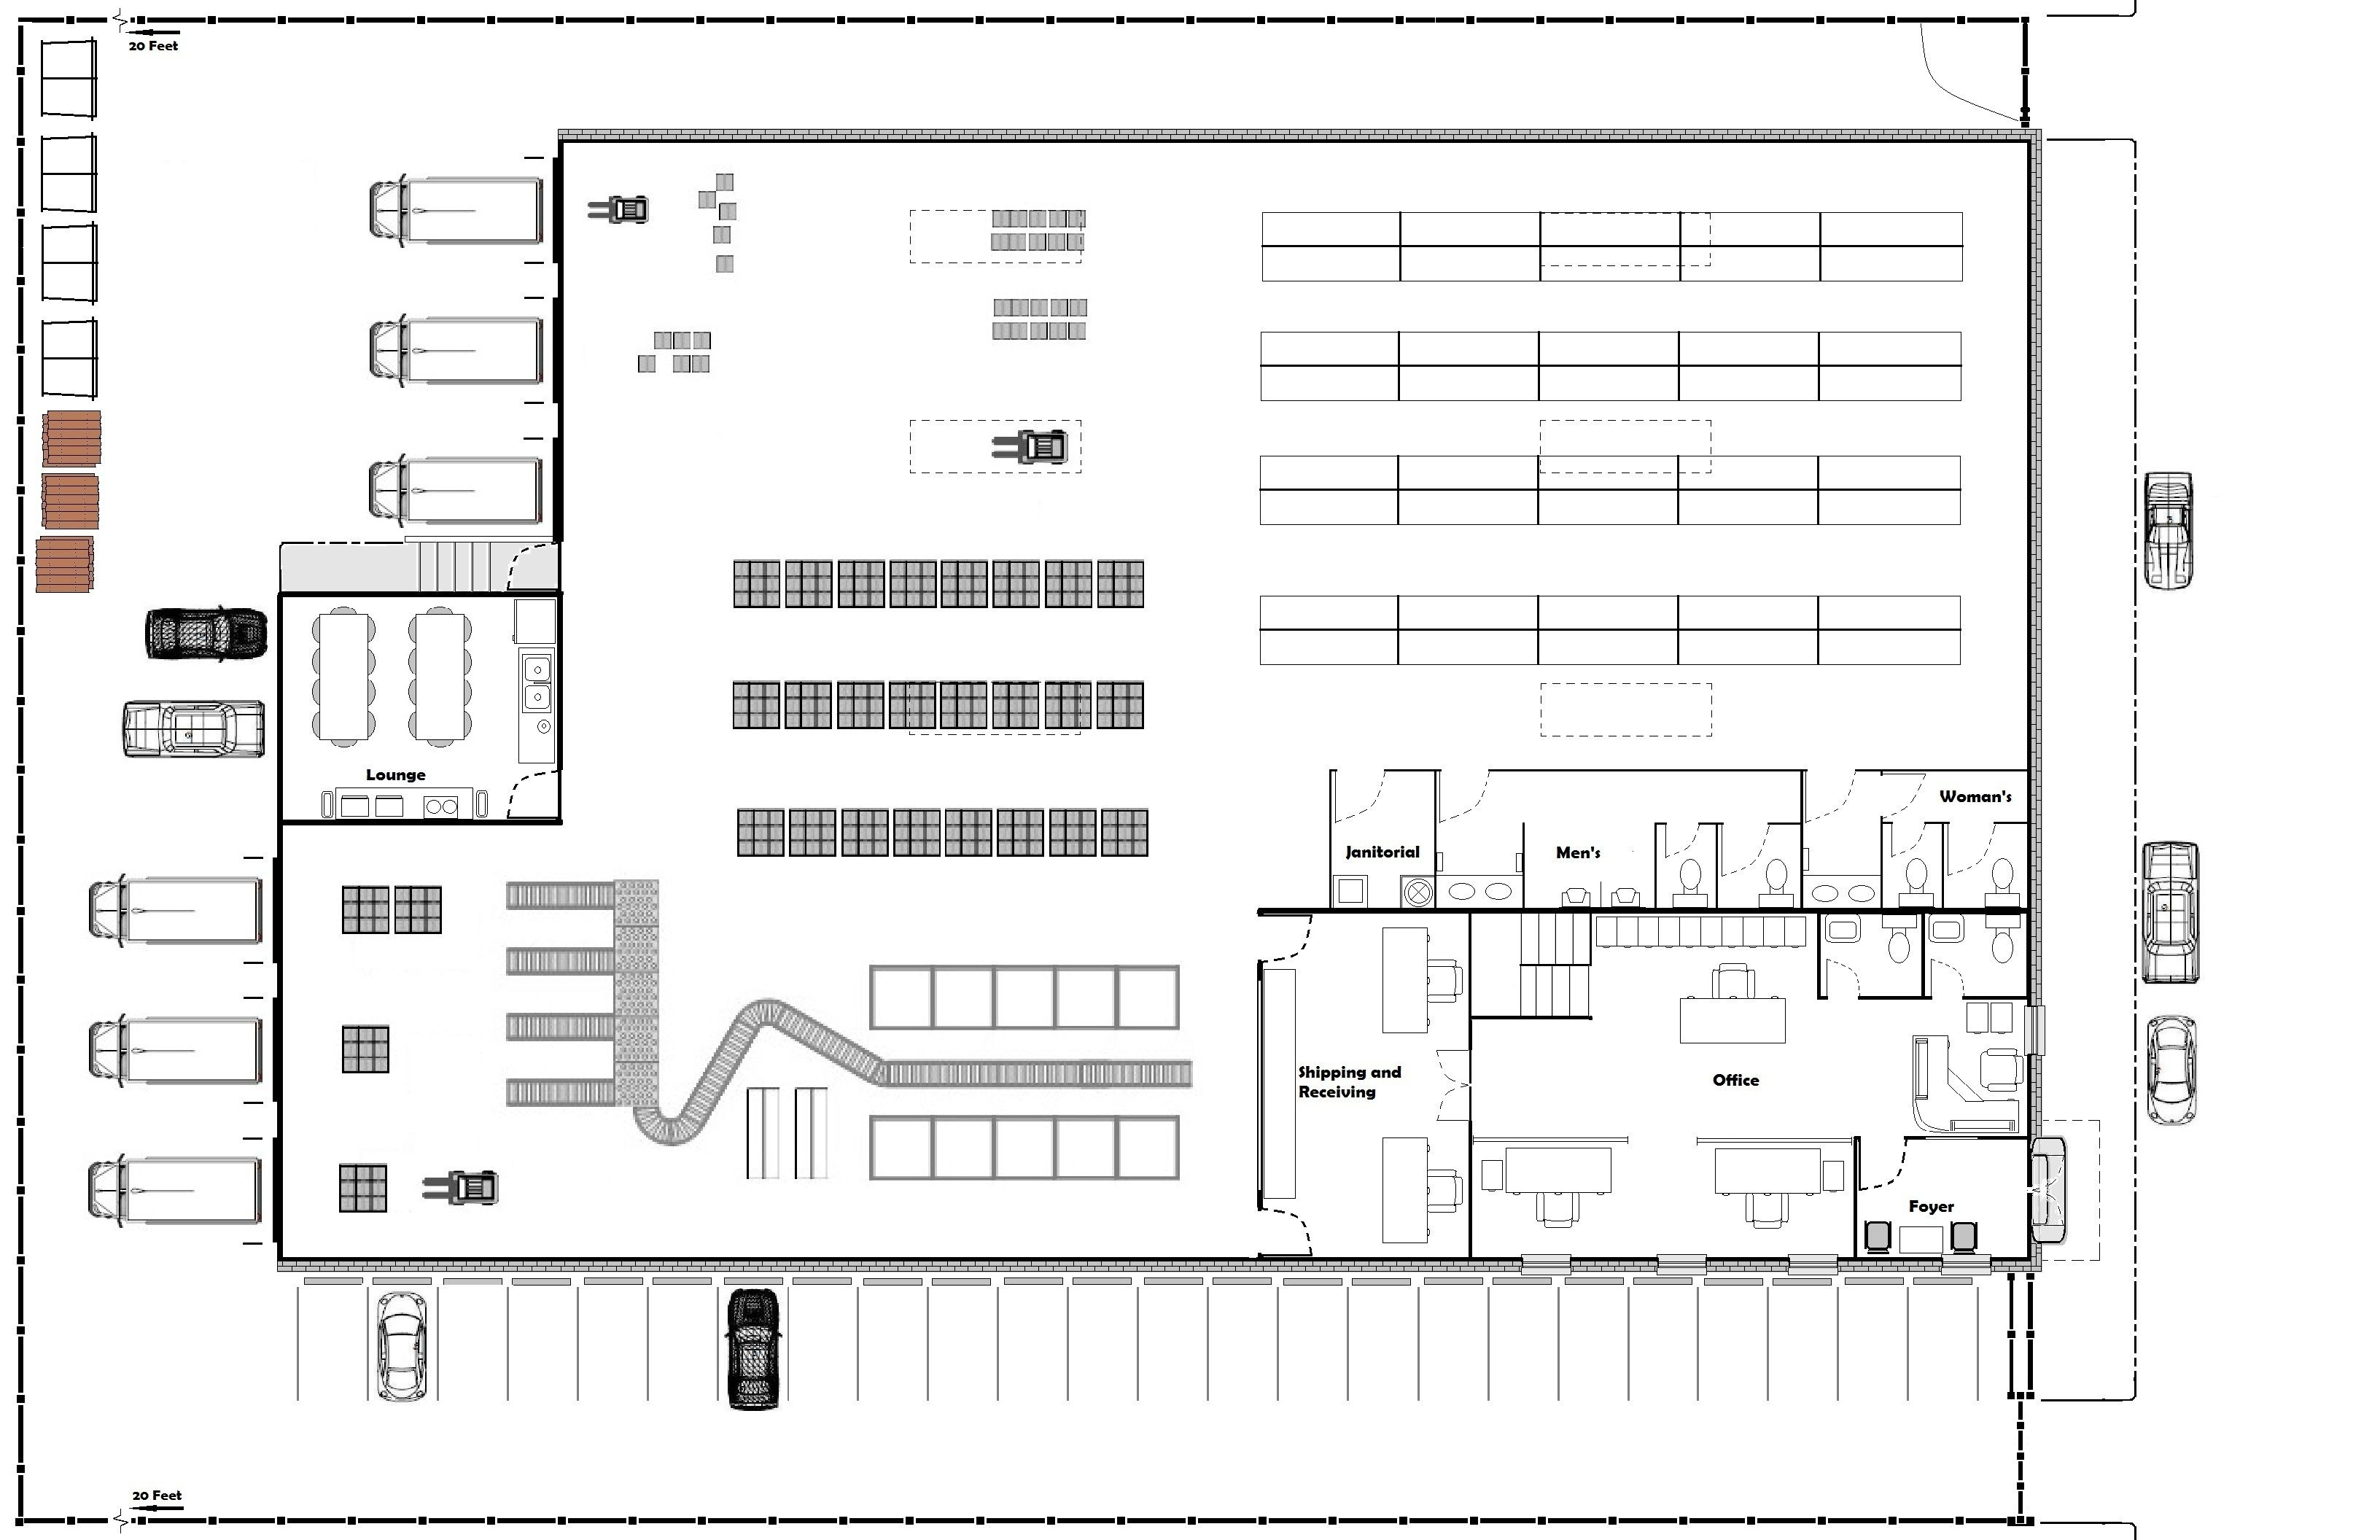 Floor plan of warehouse google search rpg maps for Draw layout warehouse